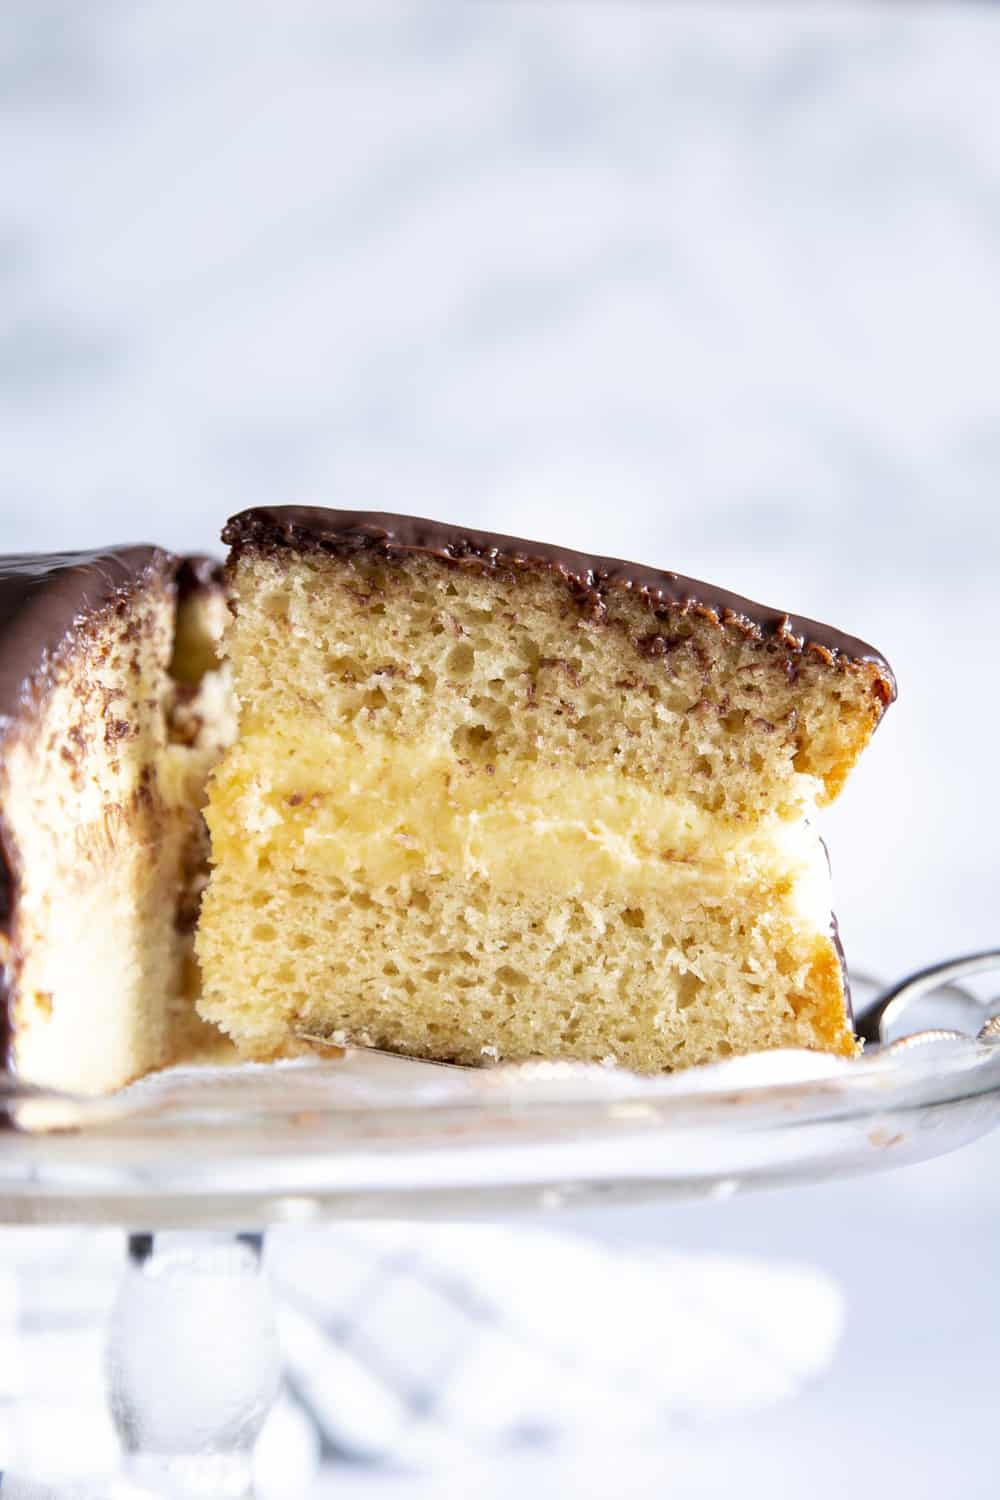 A side view of the layers in the Boston Cream Cake.